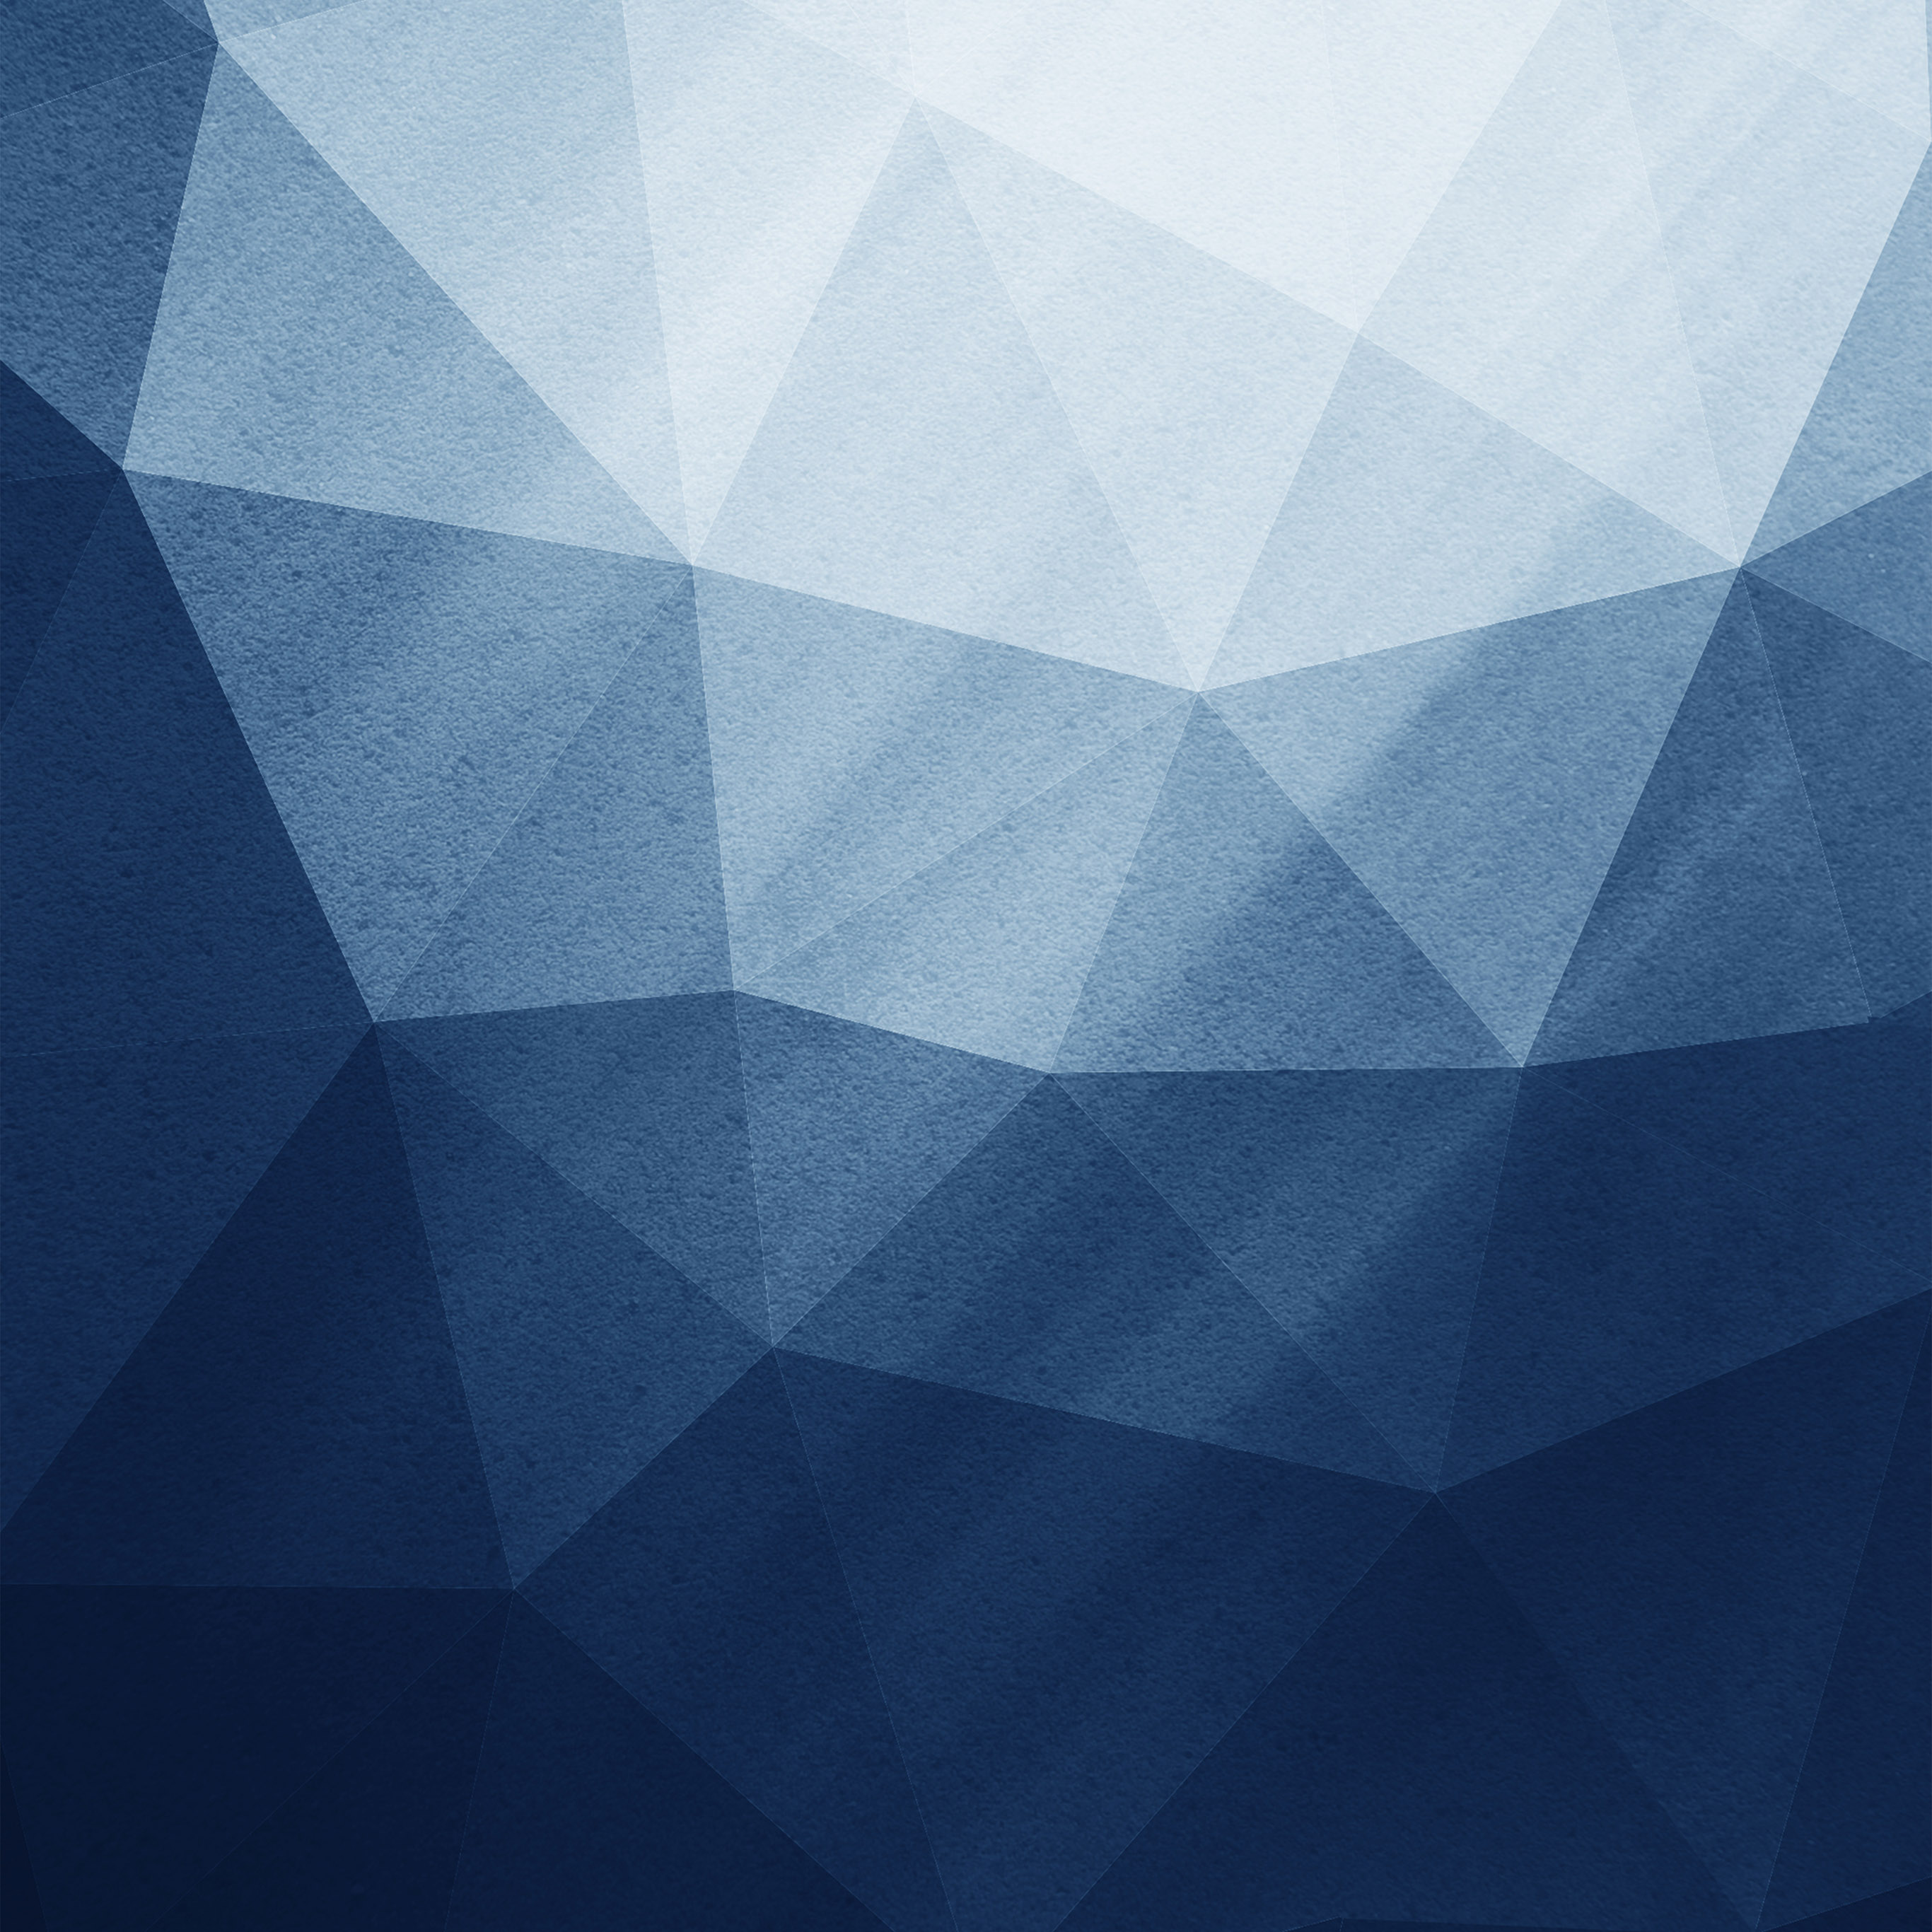 vz49 polygon blue texture abstract pattern background wallpaper